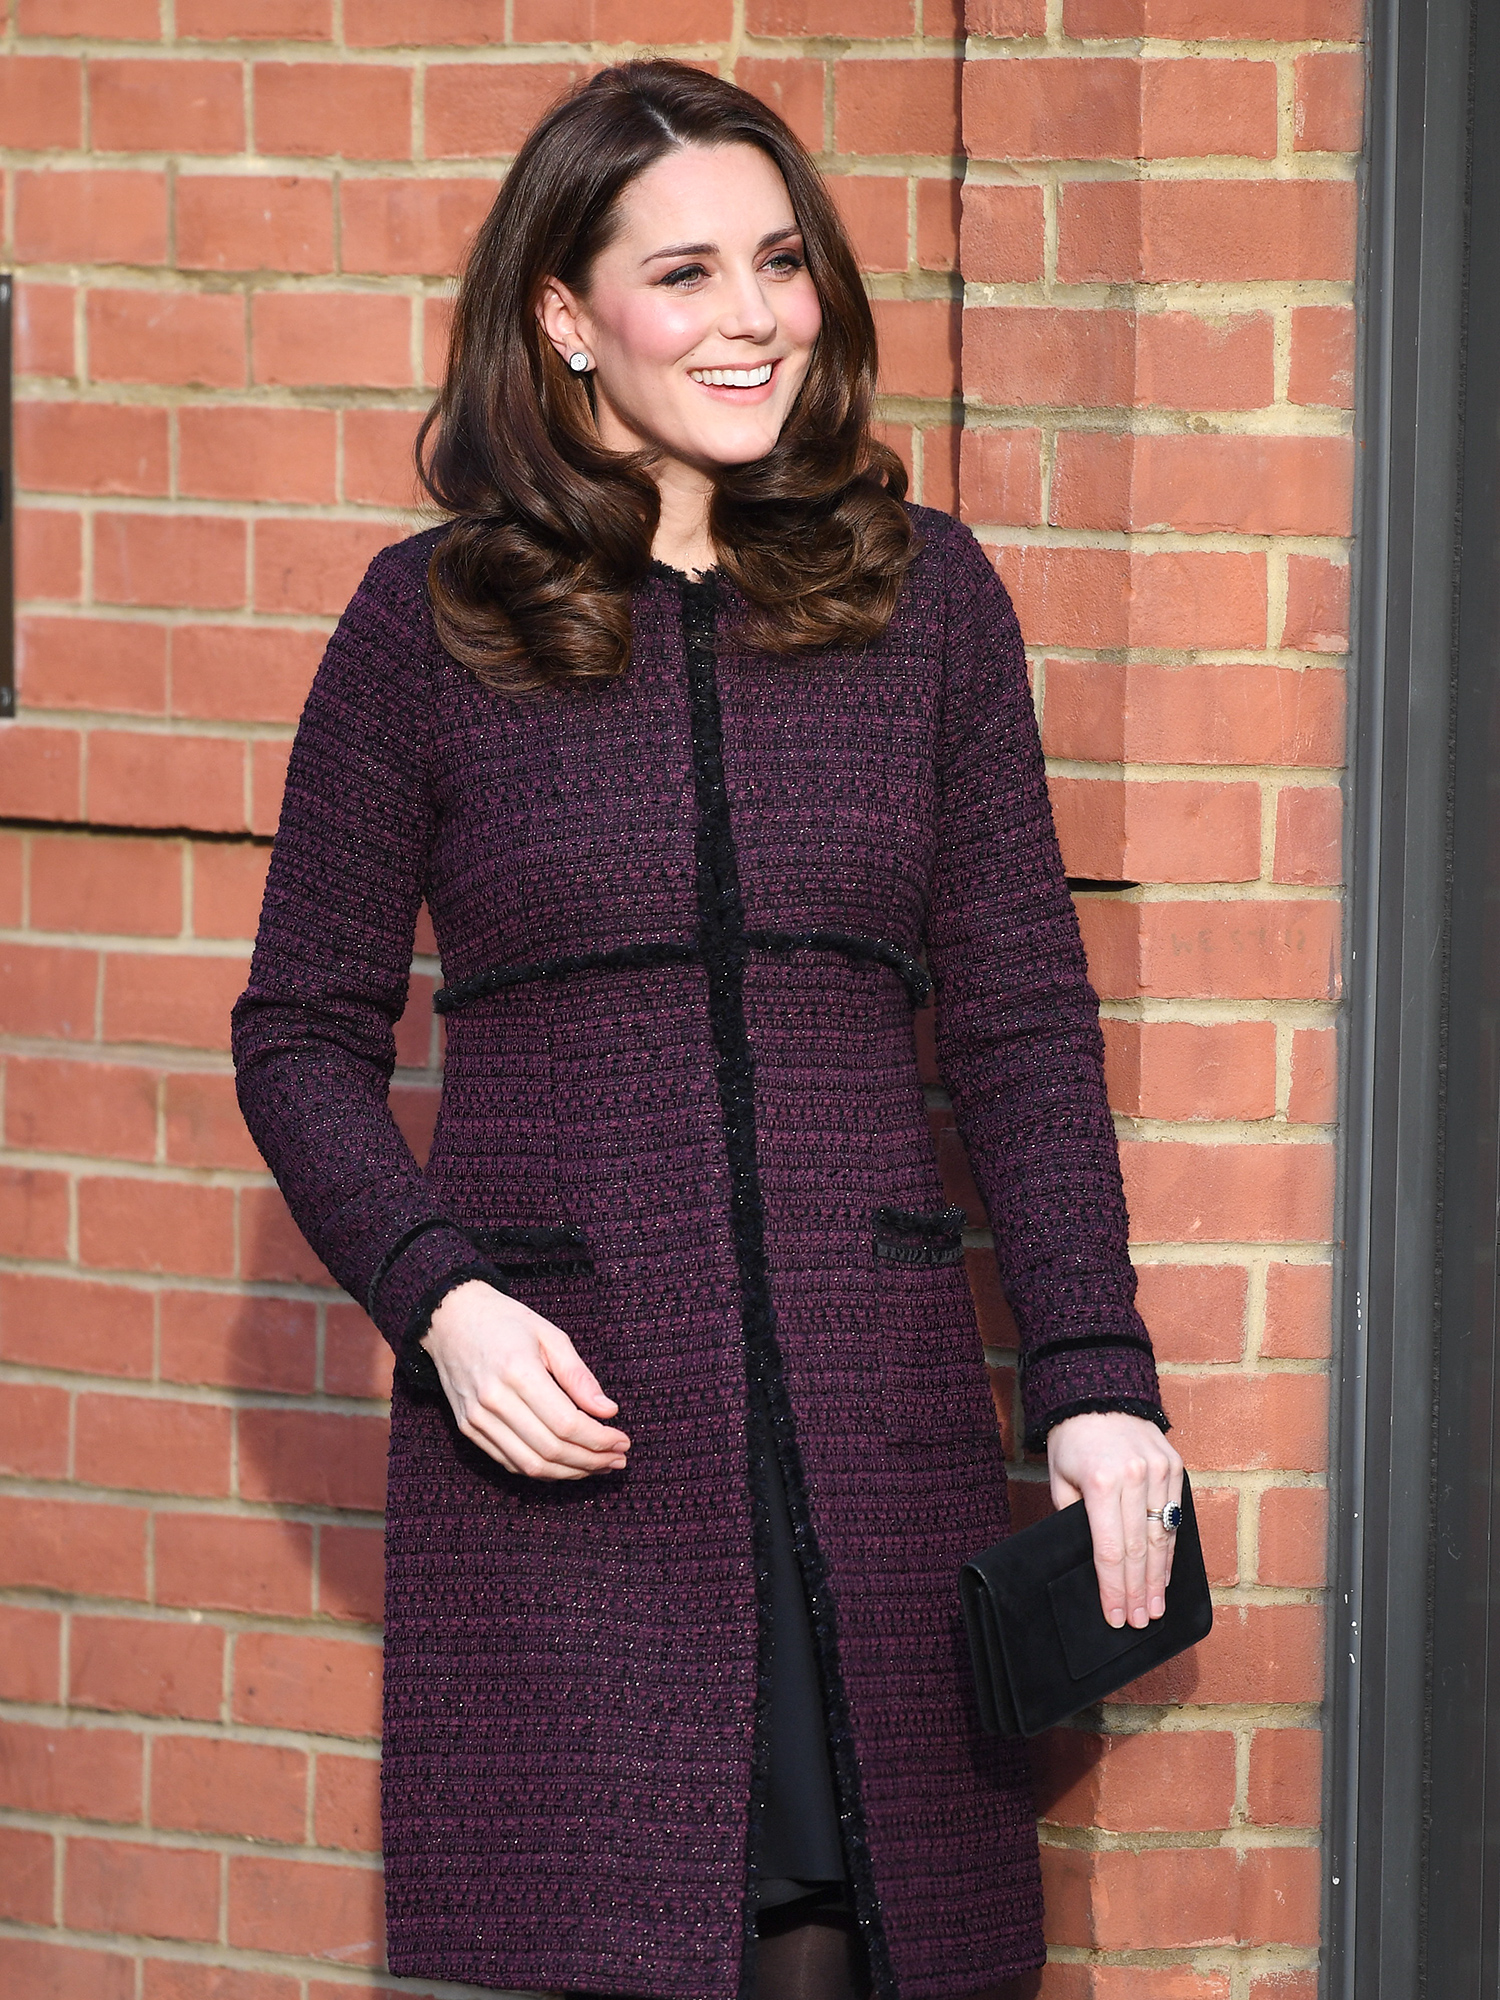 The Duchess of Cambridge attends a Community Christmas Party